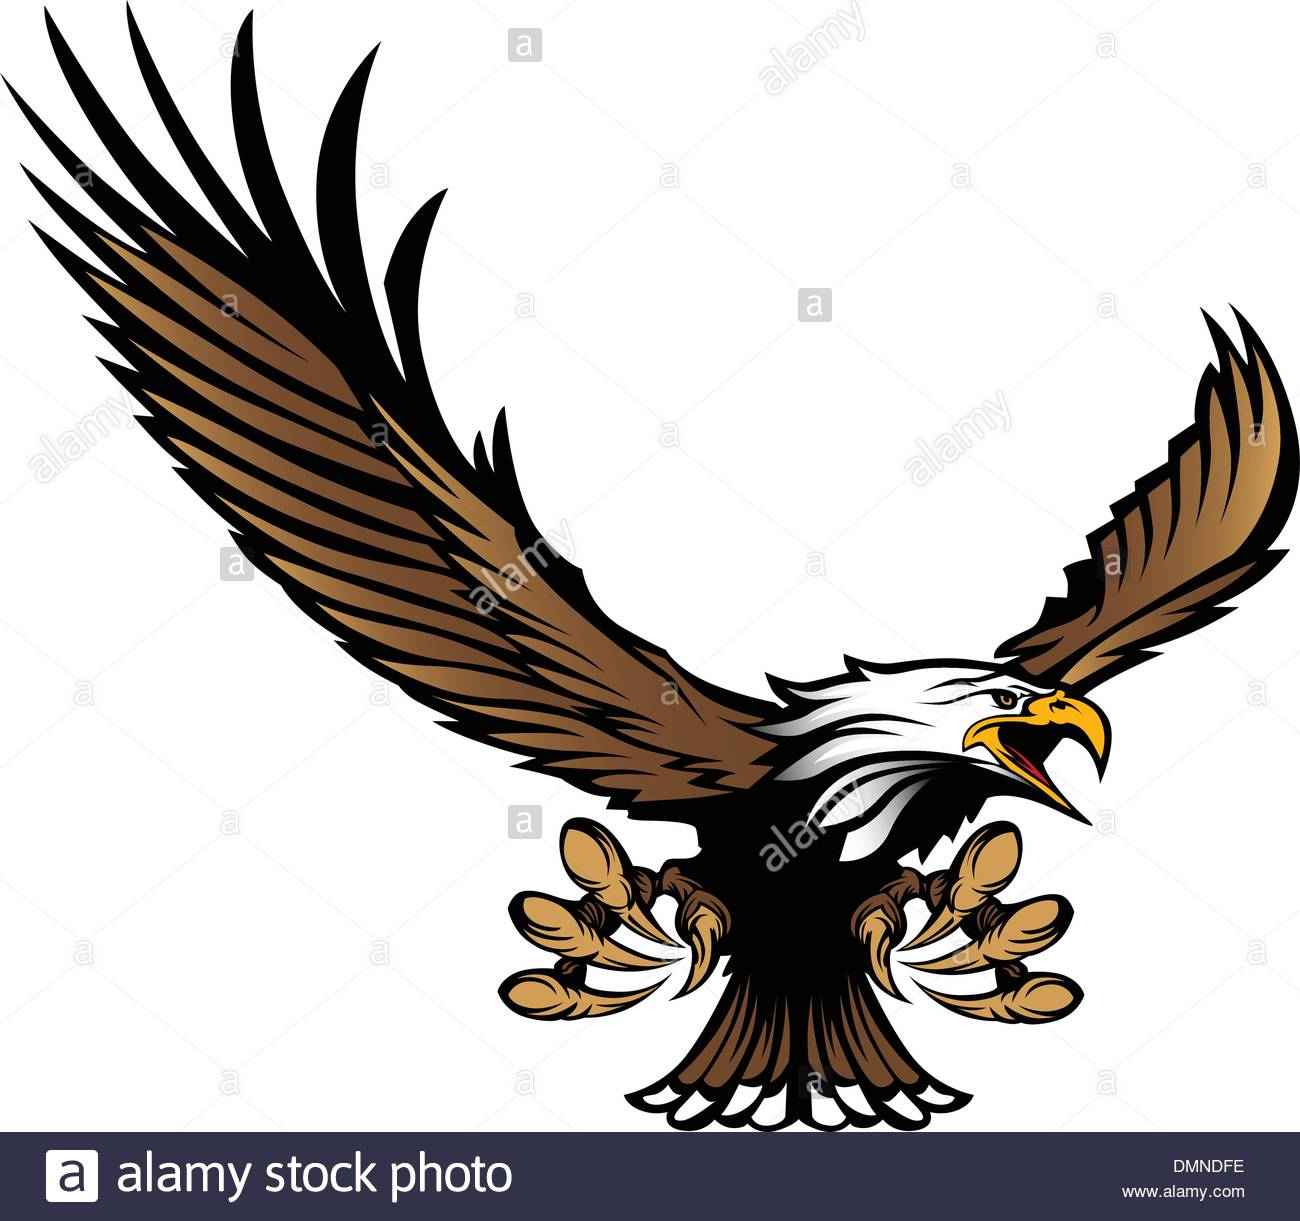 1300x1221 Eagle Mascot Flying With Talons And Wings Stock Vector Art